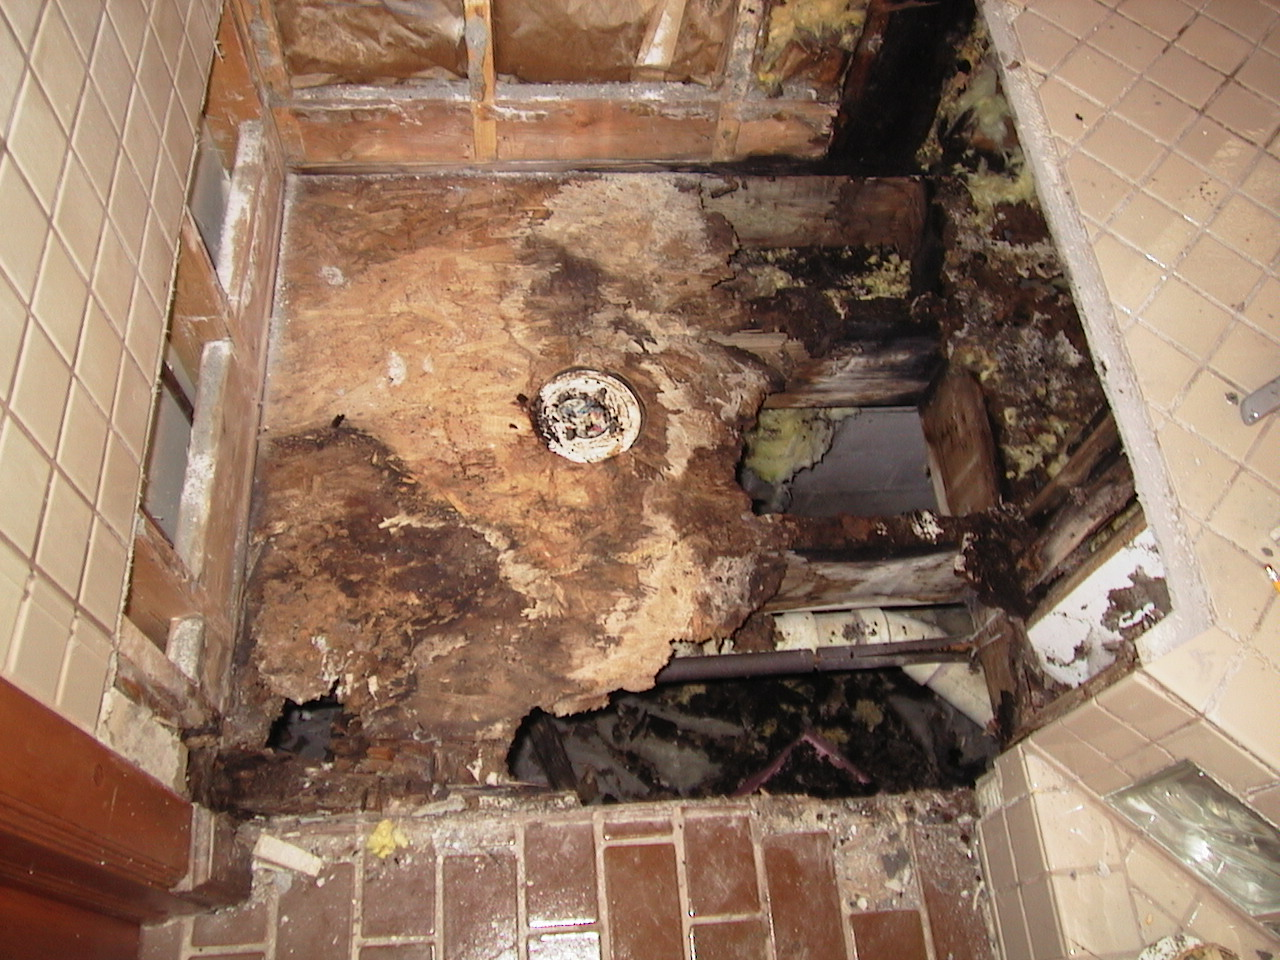 Water ran behind the shower membrane and into the sub floor.